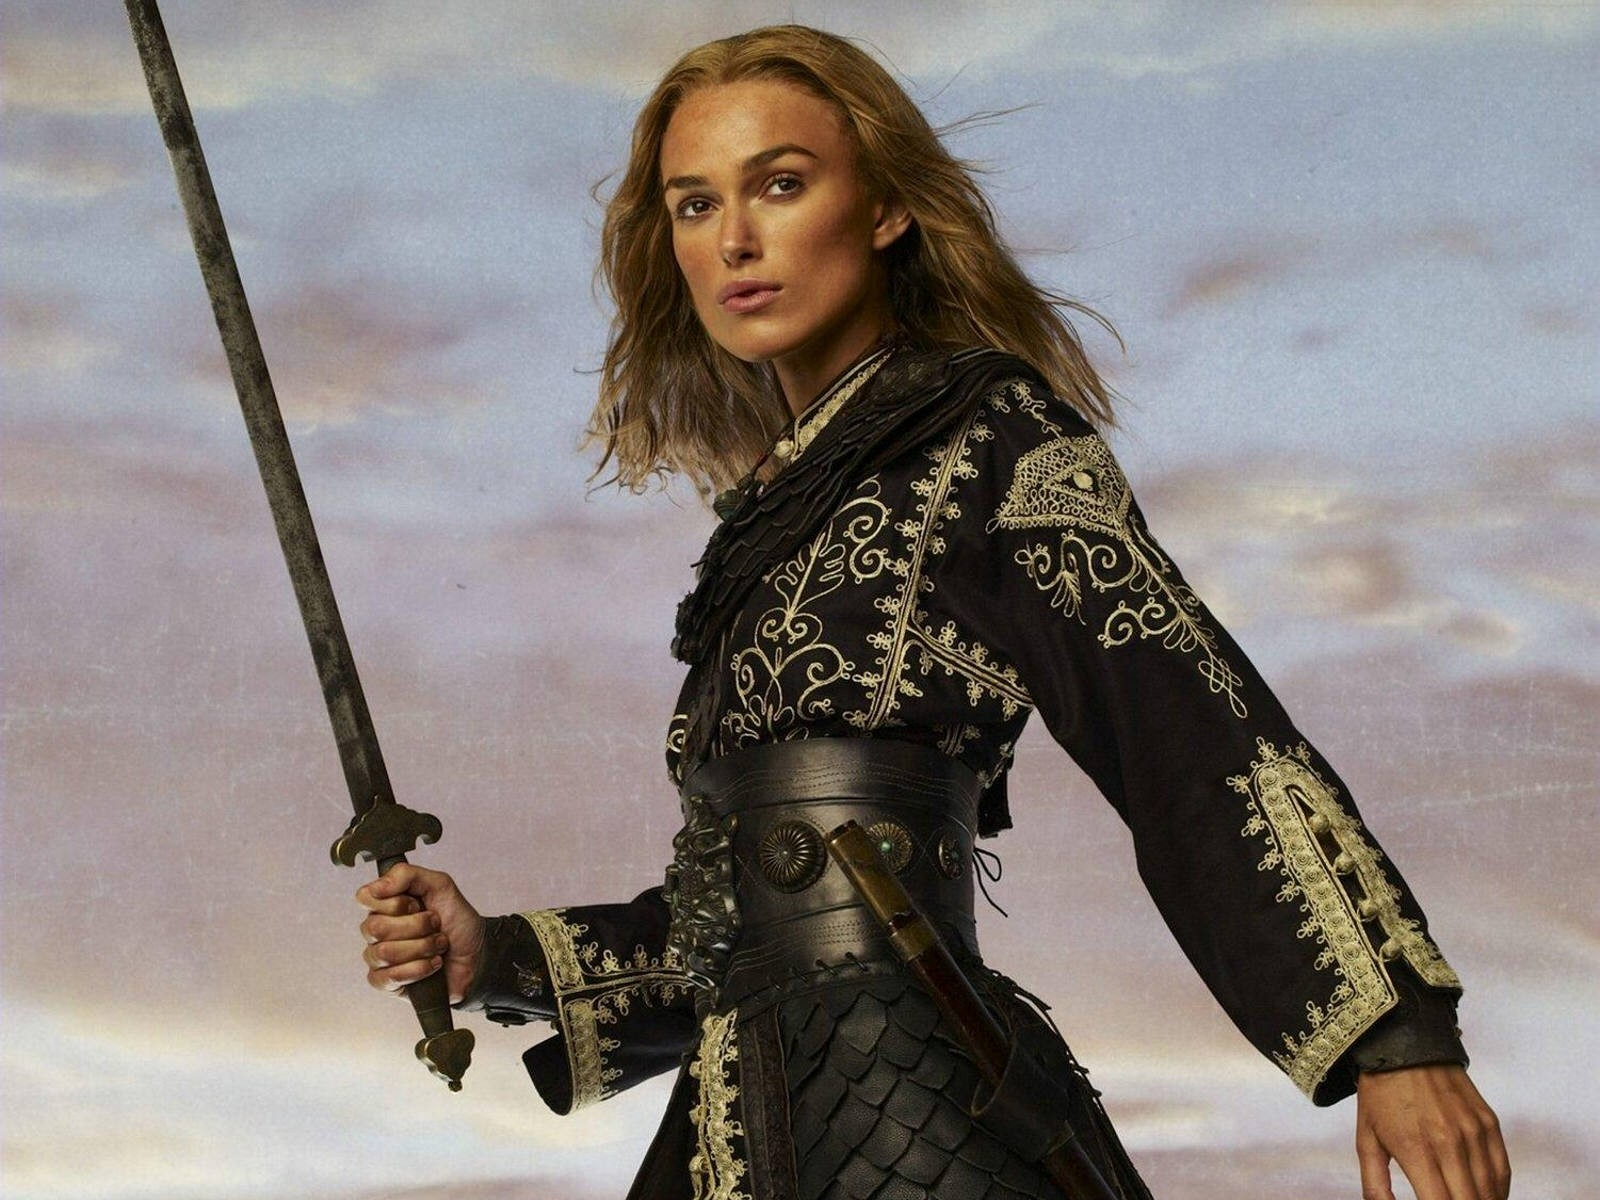 Wallpaper di Keira Knightley, star del franchise dei Pirati dei Caraibi